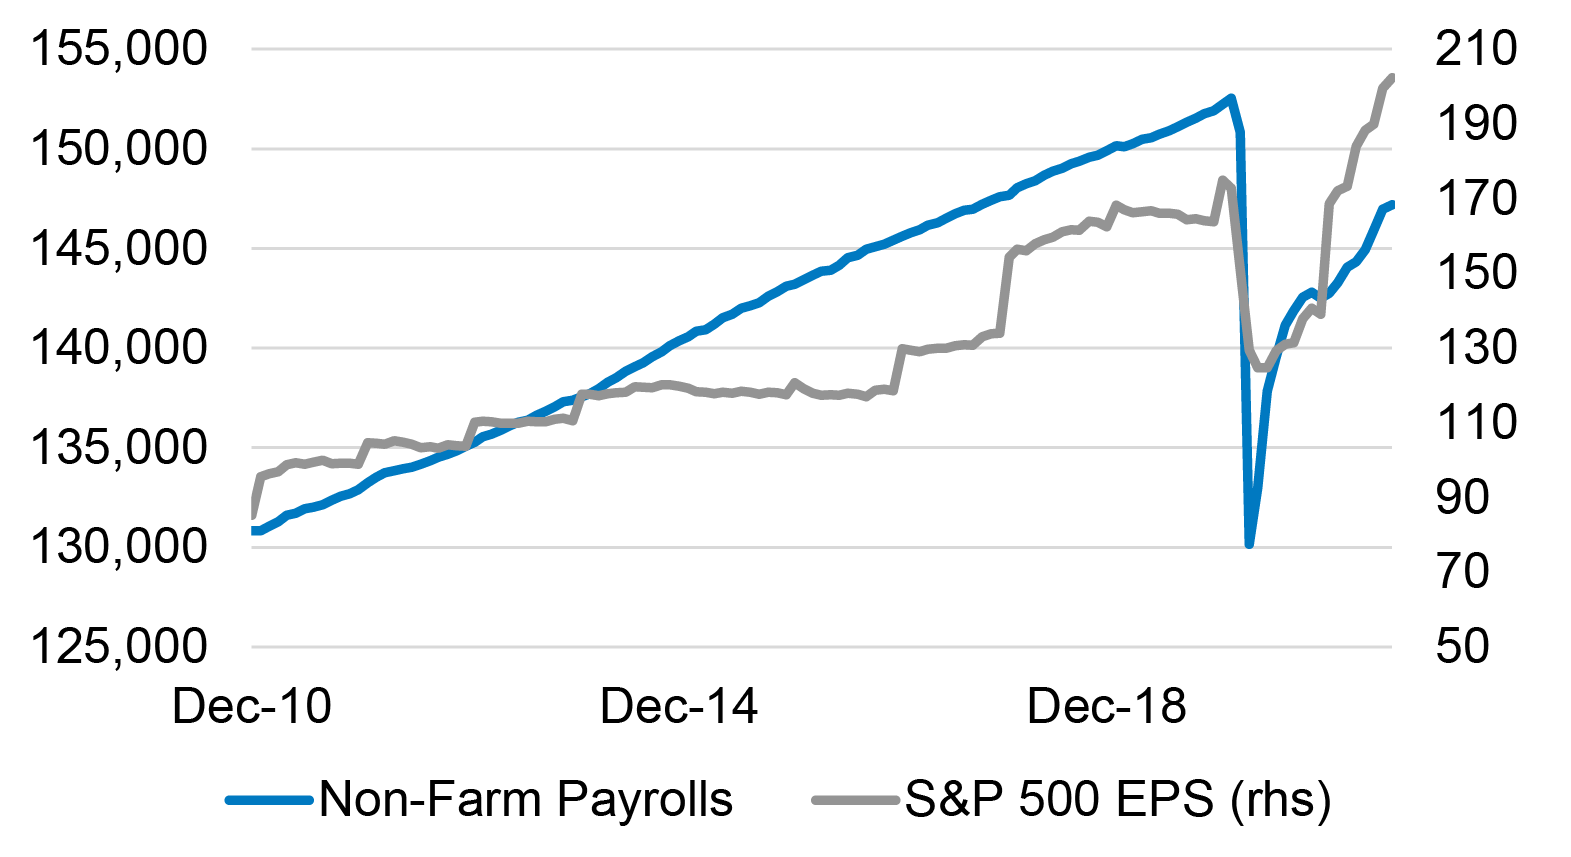 Chart showing U.S. payrolls lagging the S&P 500 earnings recovery